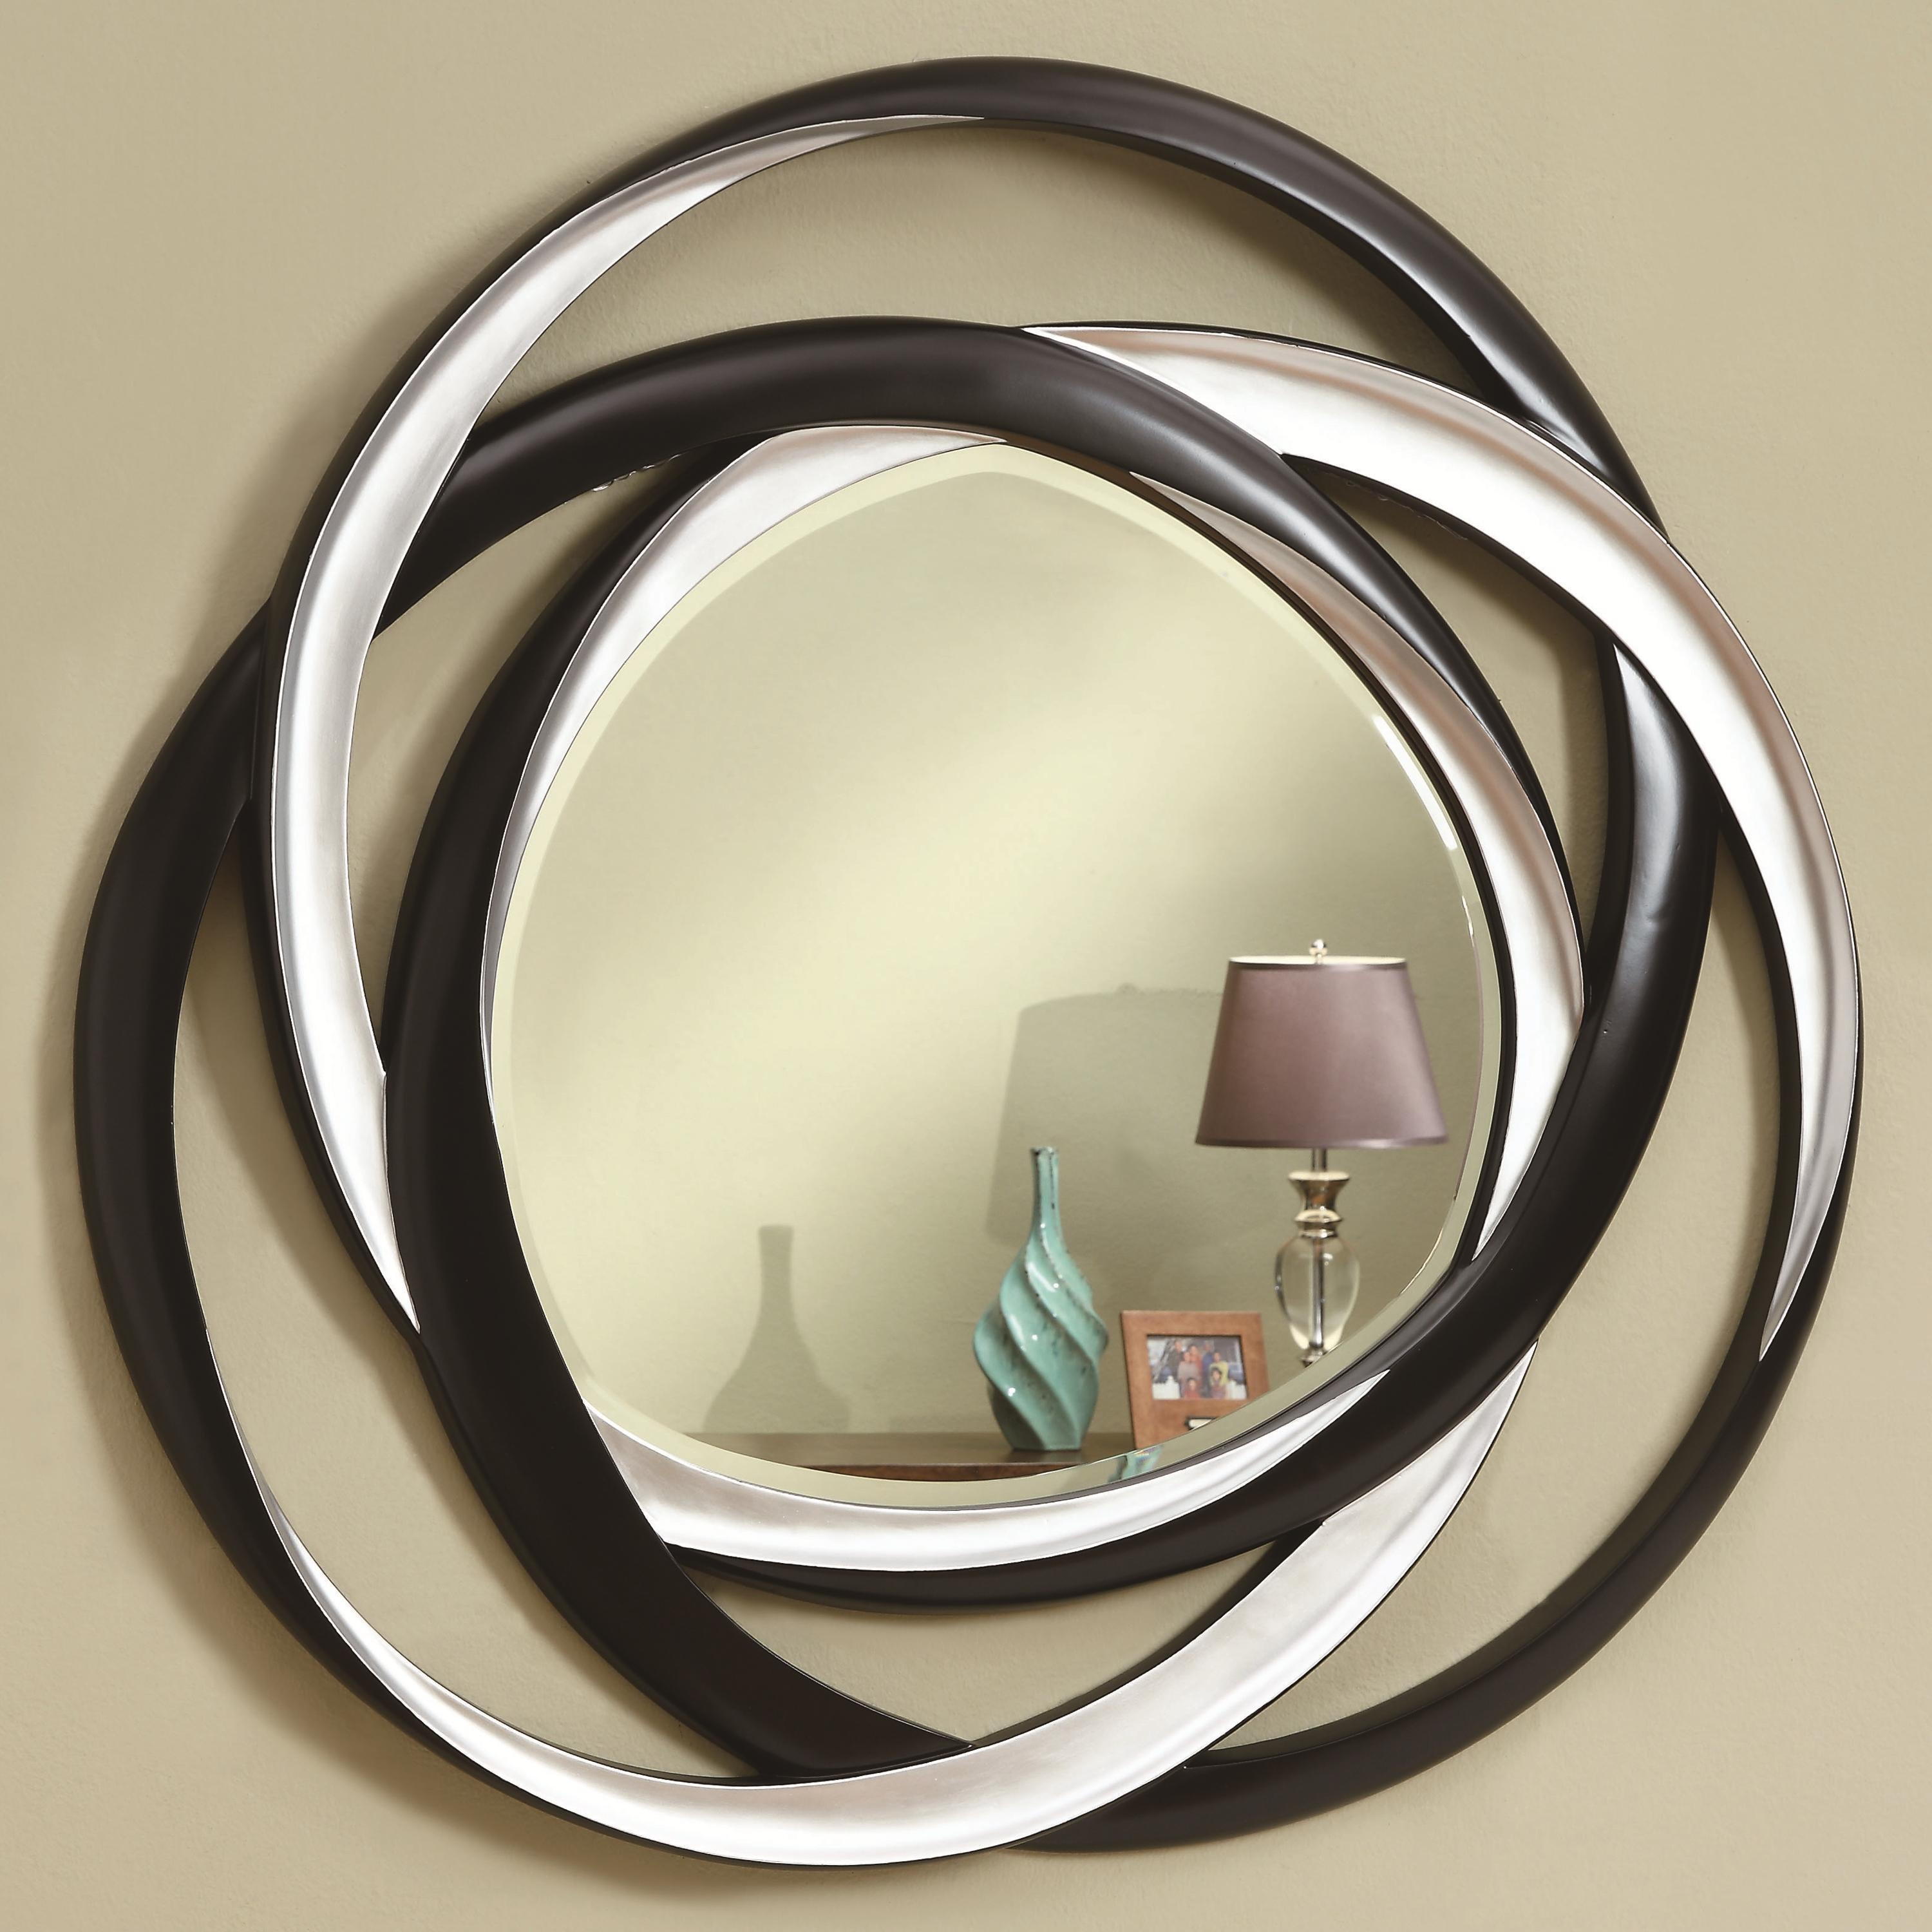 Contemporary Mirrors For Living Room 8988 Intended For Contempary Mirrors (Image 6 of 15)